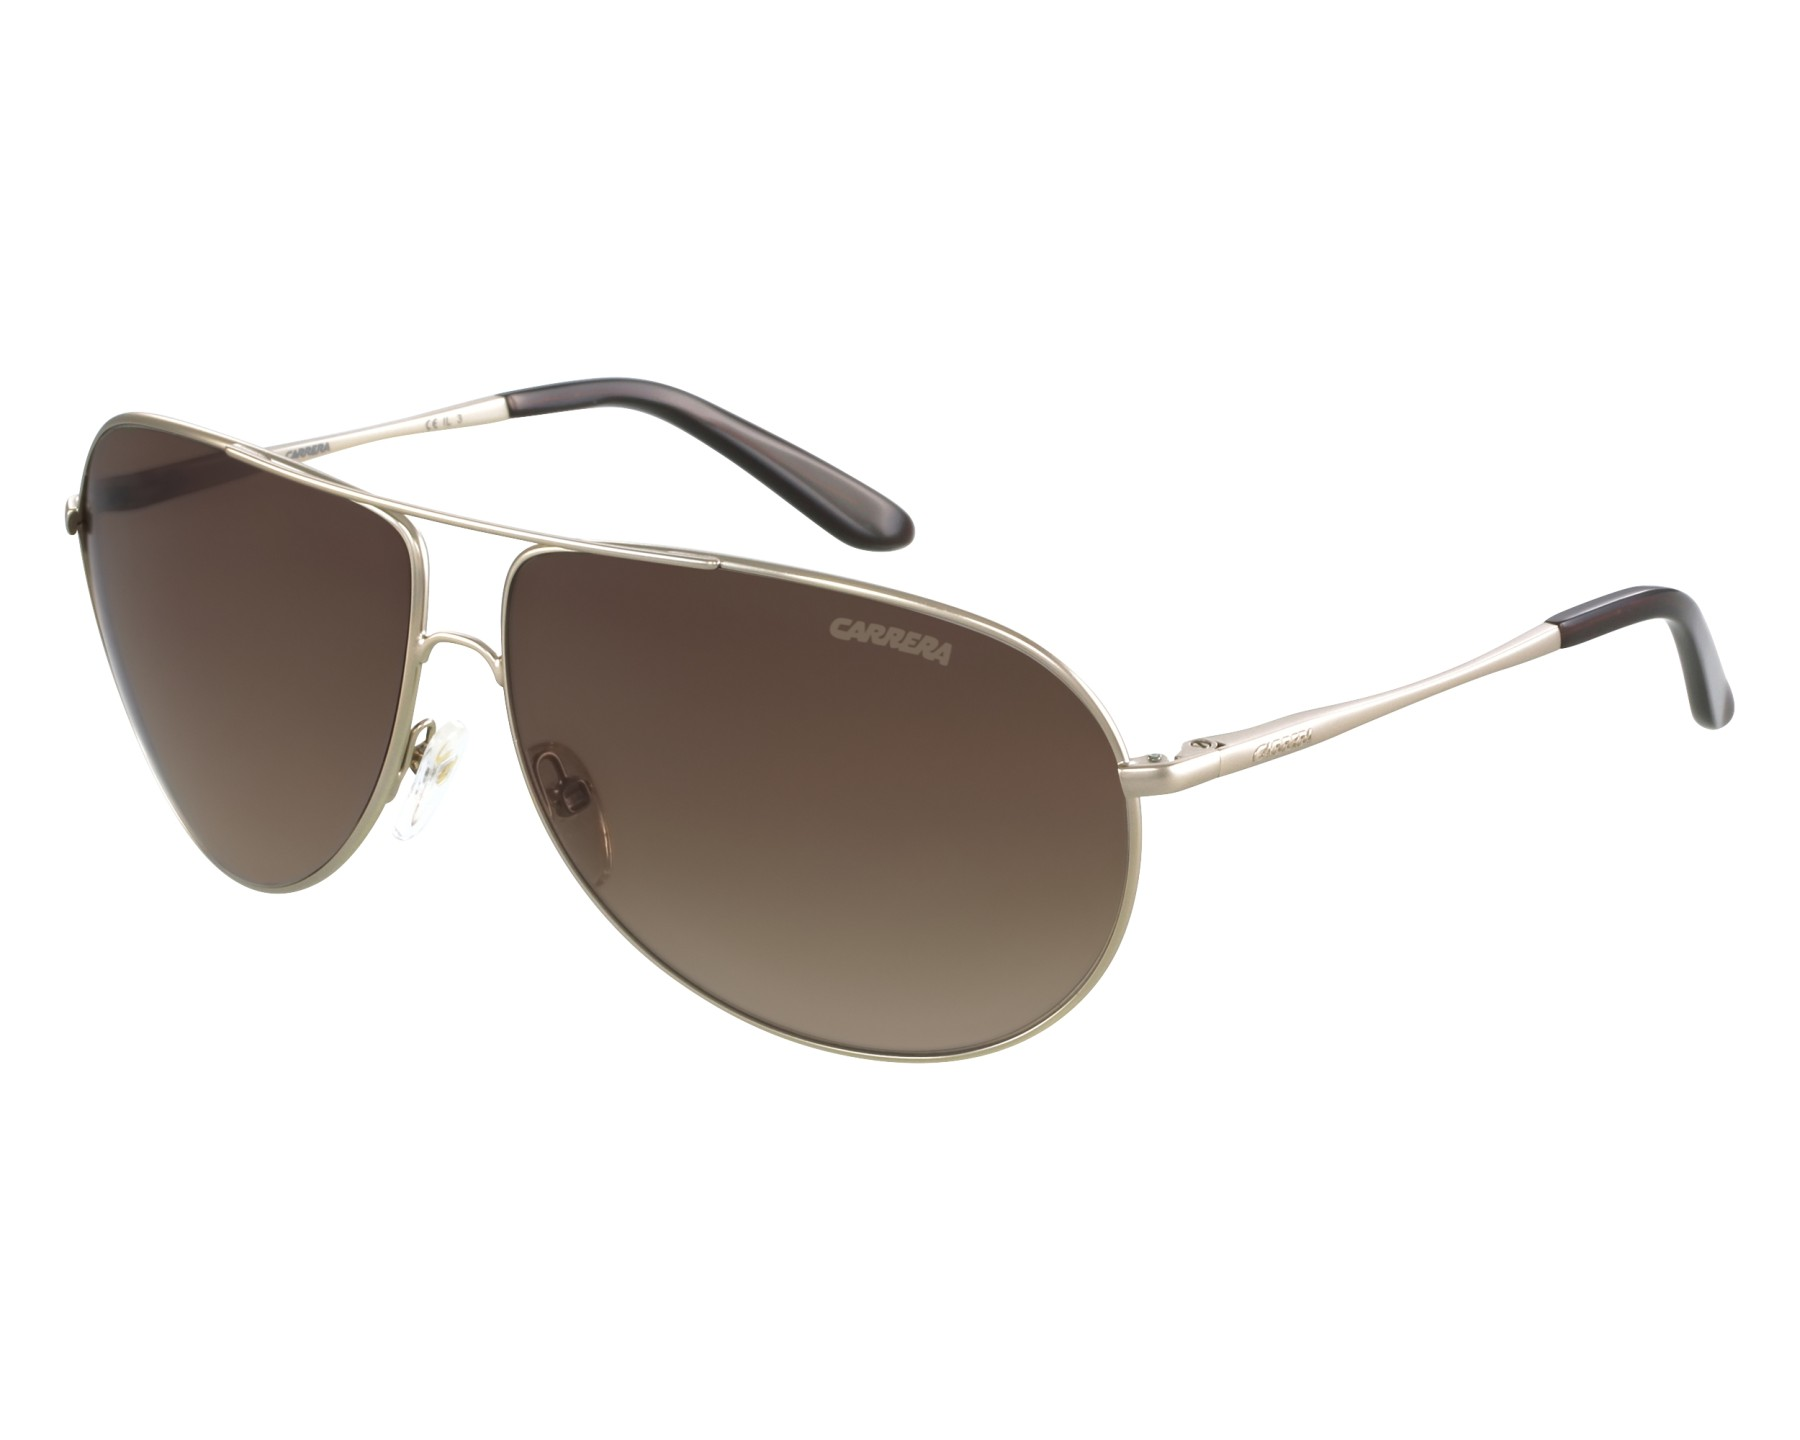 Carrera New Gipsy Aoz/j6 64 Mm/11 Mm Qy5Crp